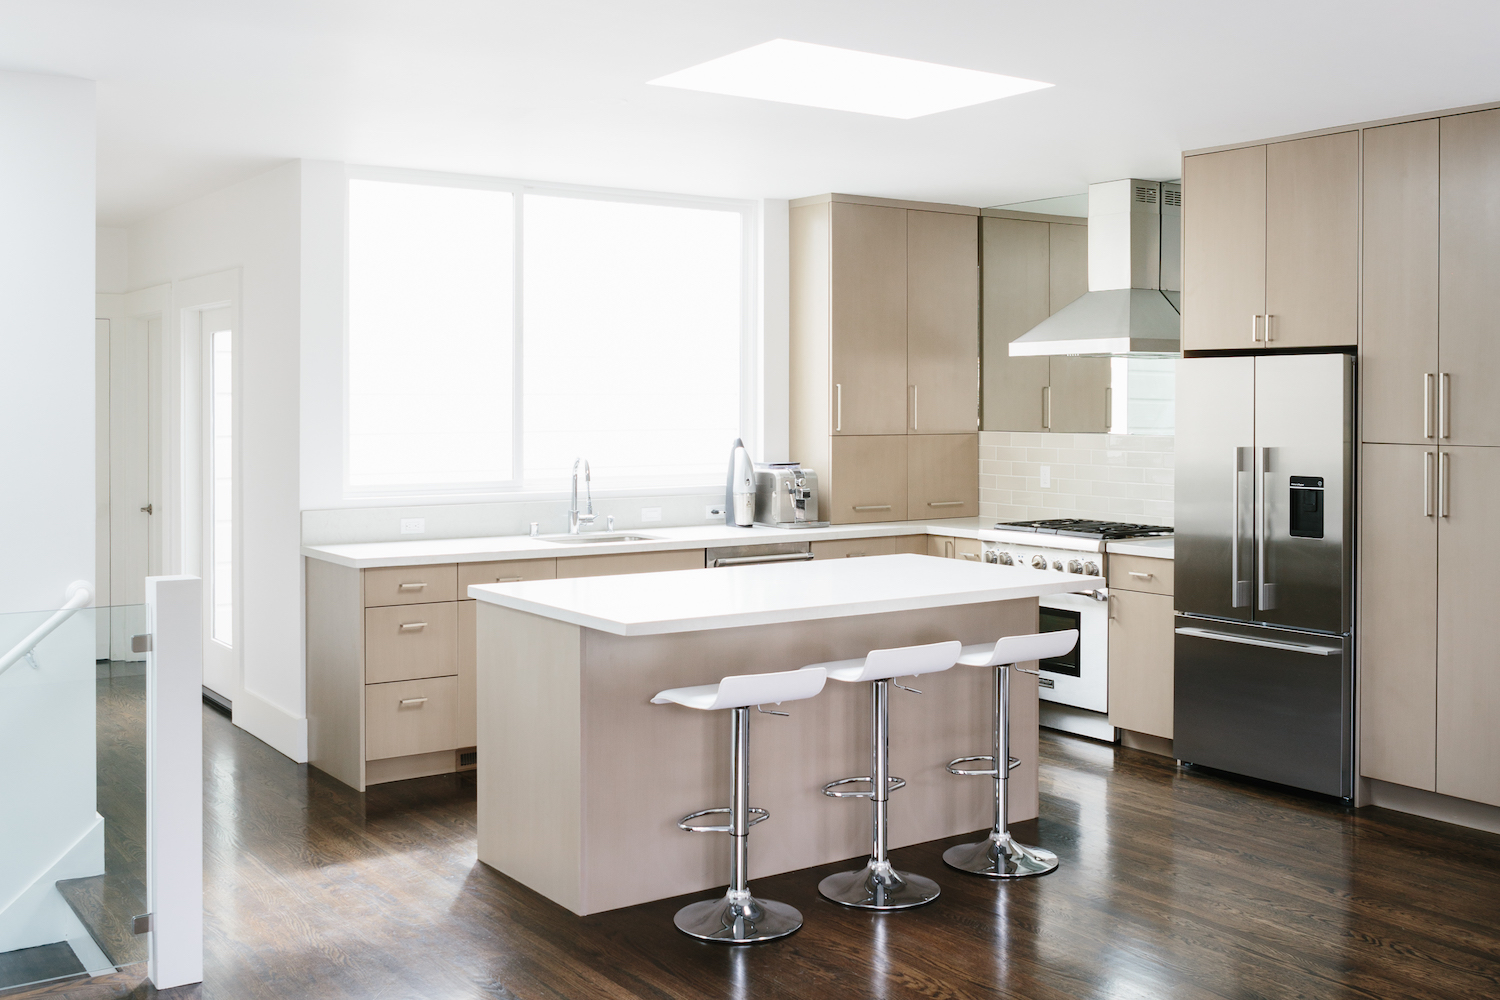 kitchen with light wood cabinets and center island and bar seating and white counters and stainless steel appliances.jpg